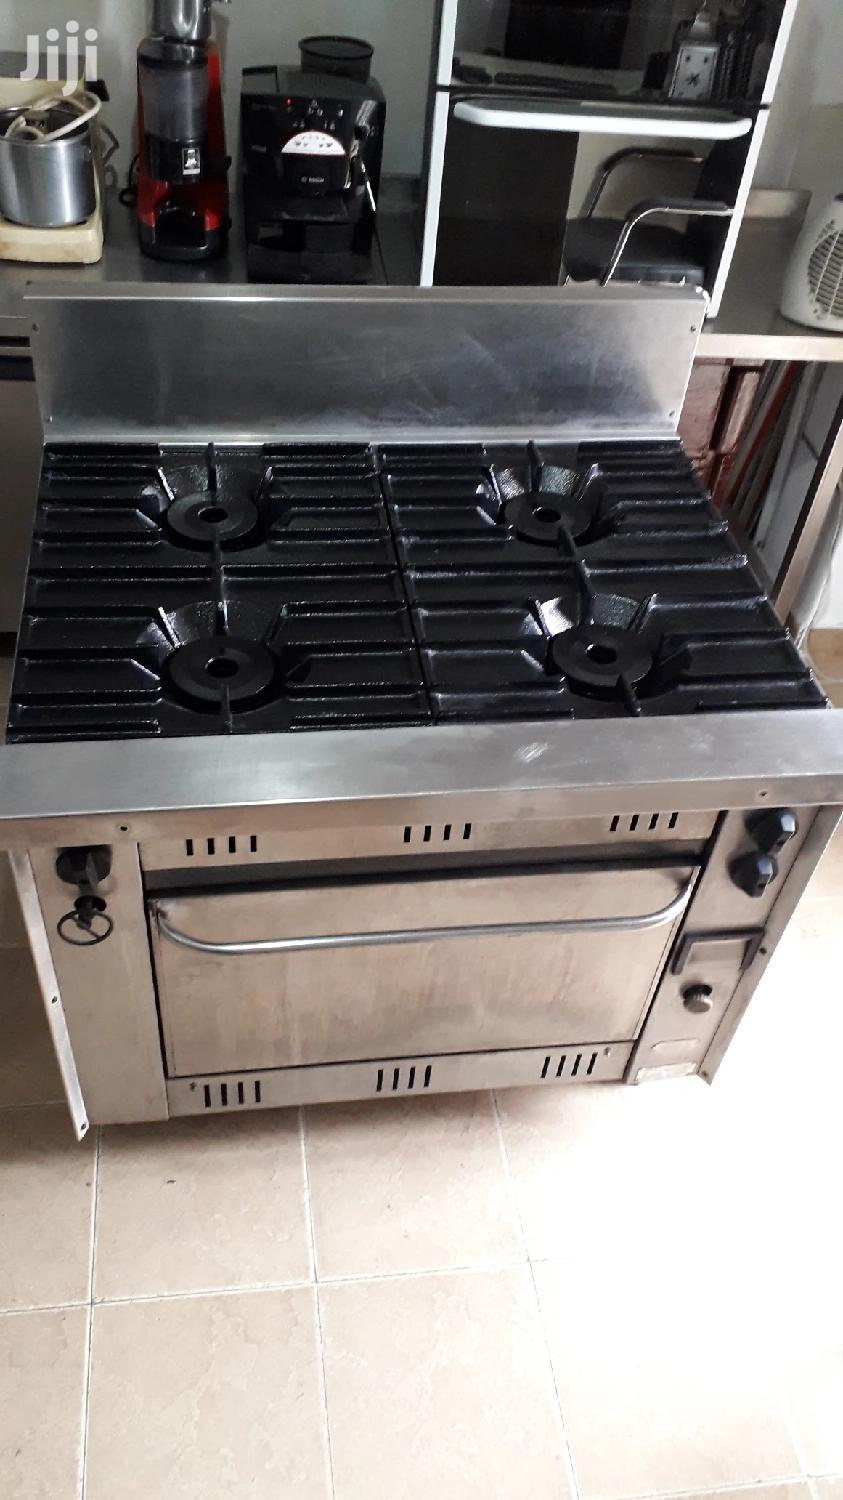 Commercial Gas Cooker With Gas Oven. Vulcan Made In Italy